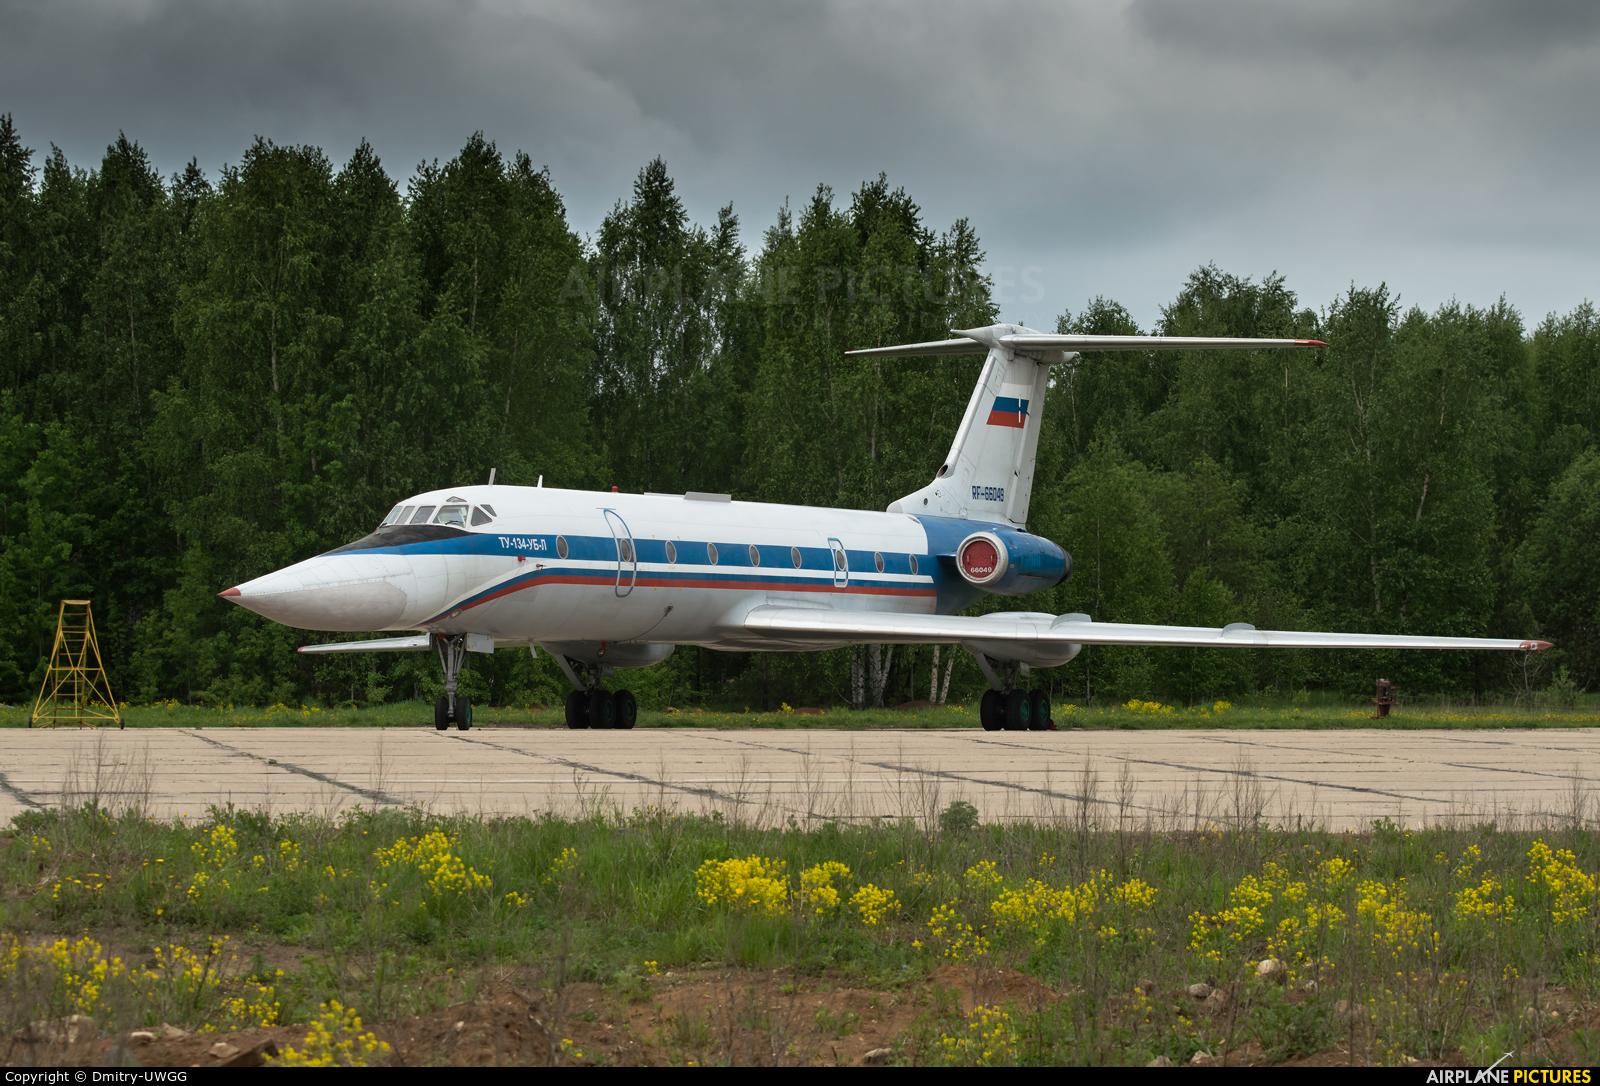 Russia - Ministry of Internal Affairs RF-66049 aircraft at Undisclosed Location